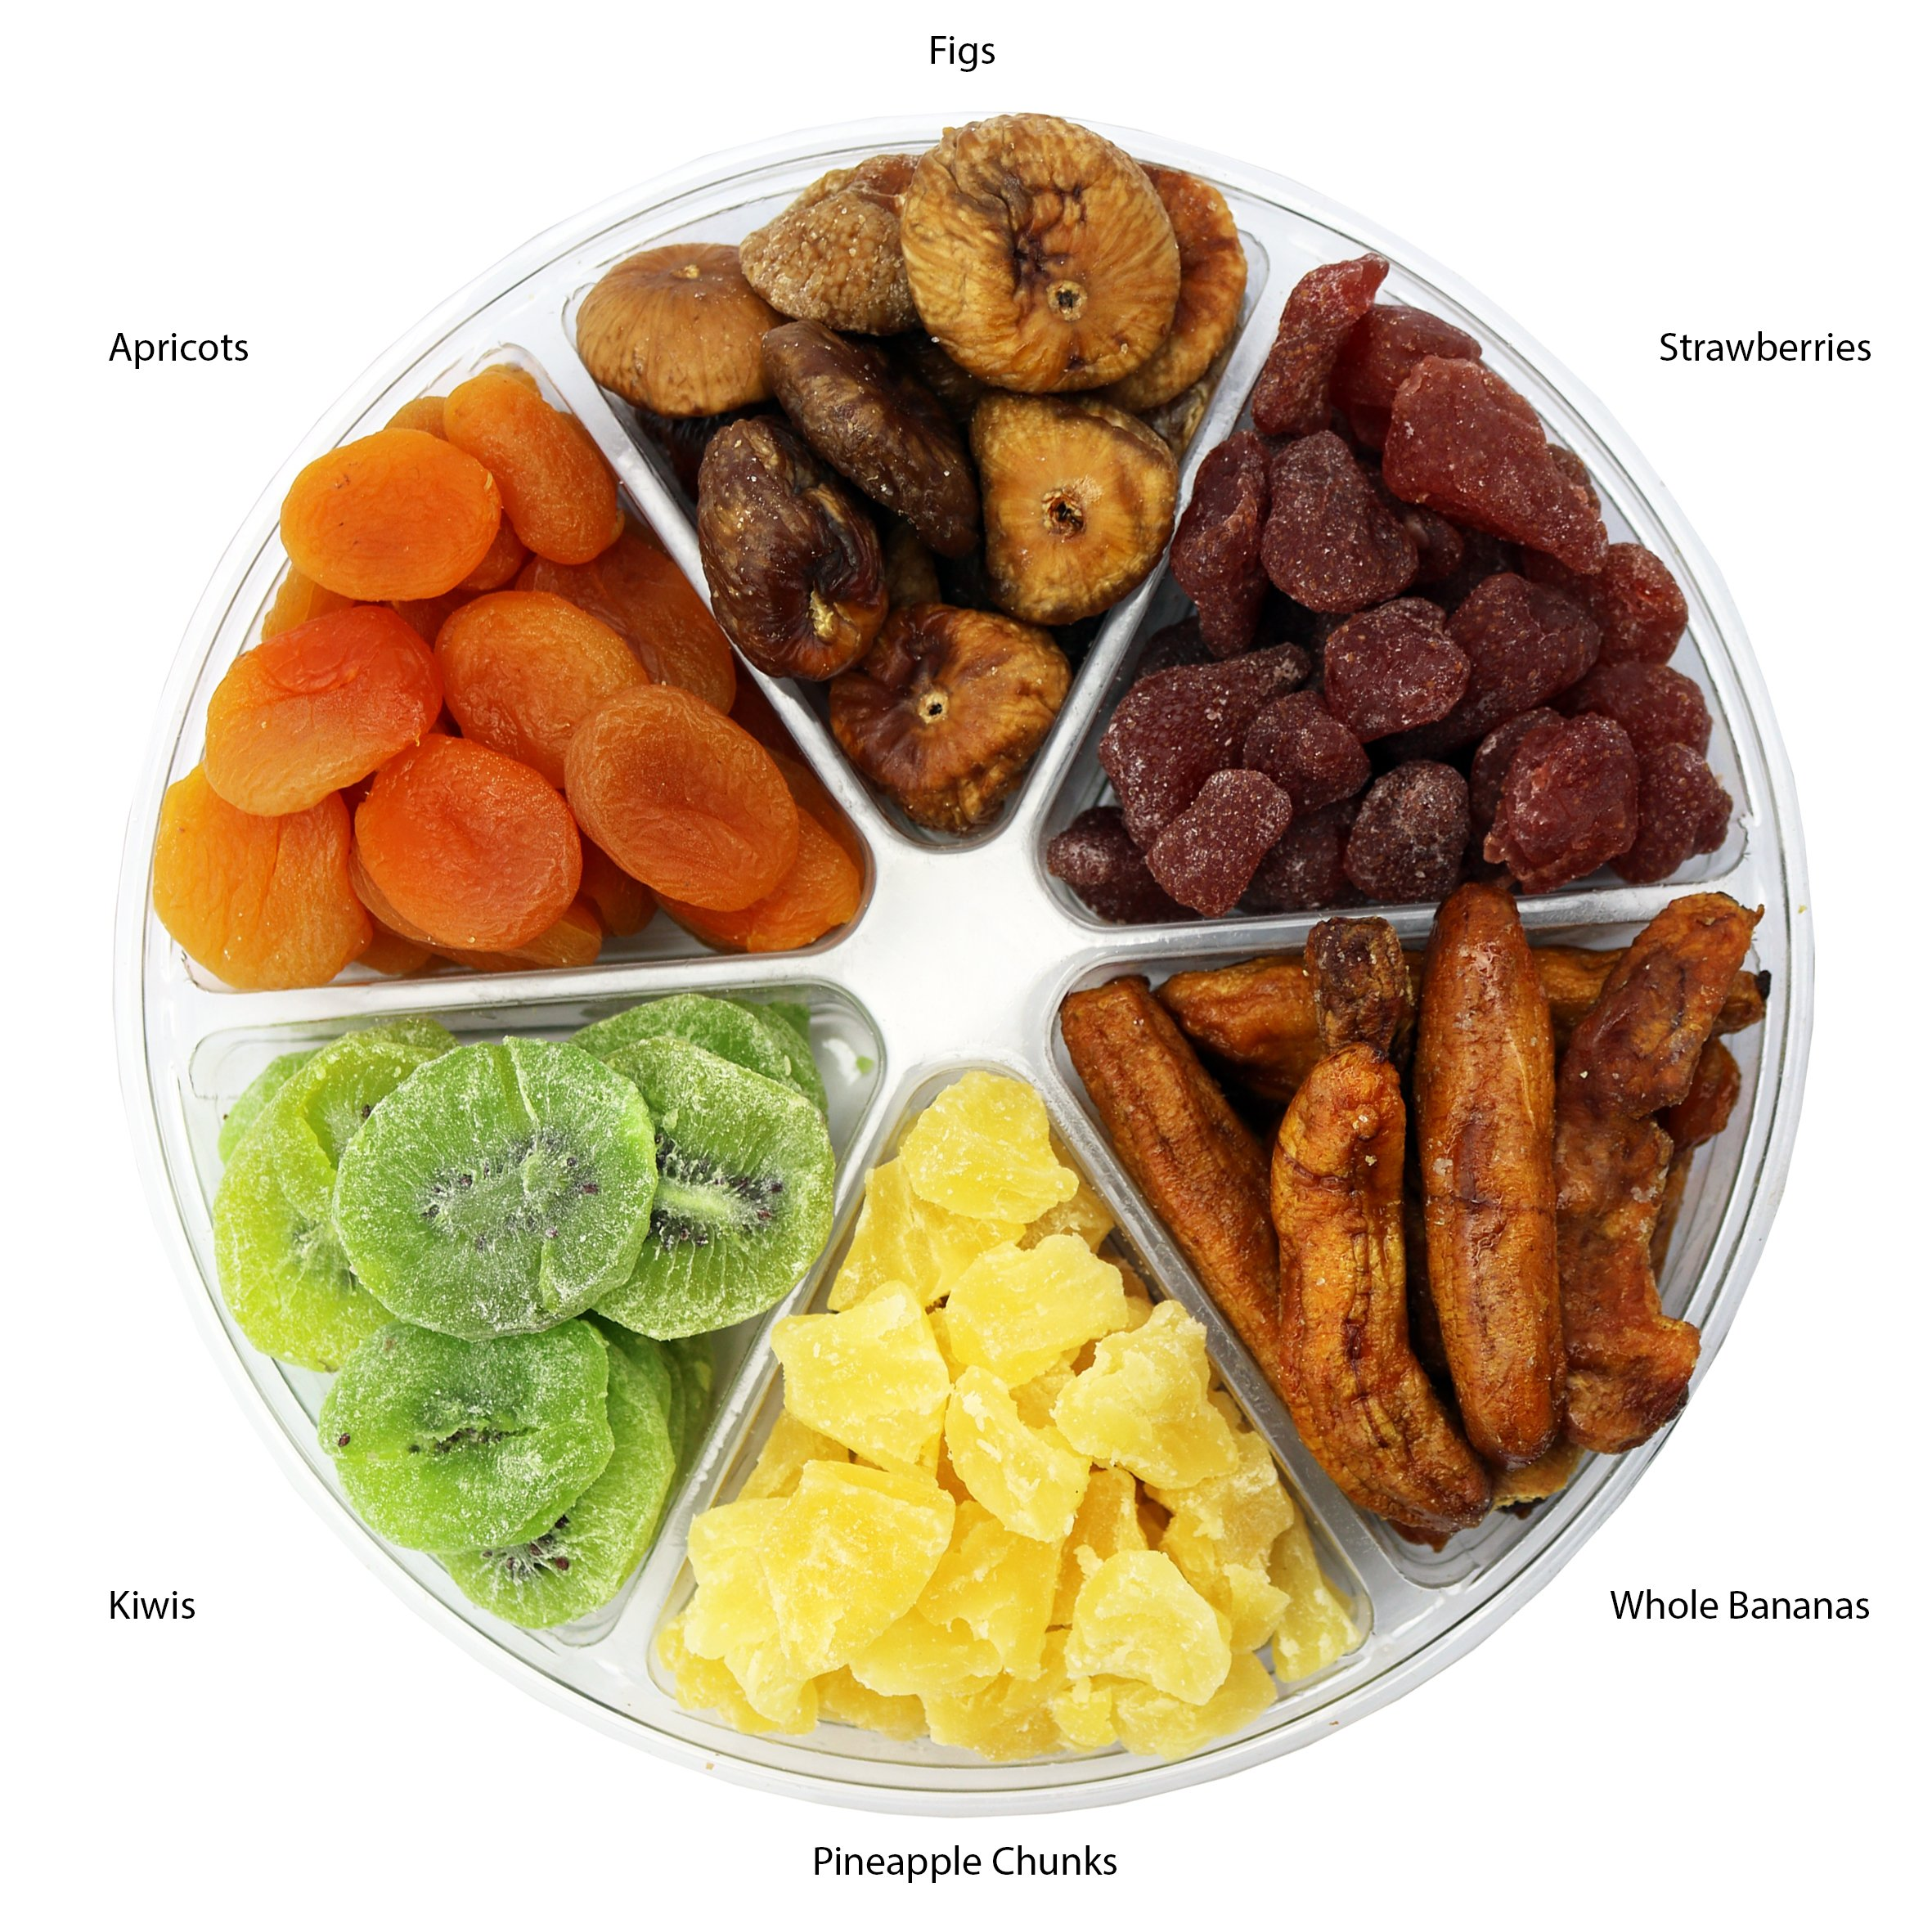 Dried Fruit Deluxe Gift Tray, 6 Section Collection of Fresh Fruits By FirstChoiceCandy by First Choice Candy (Image #2)